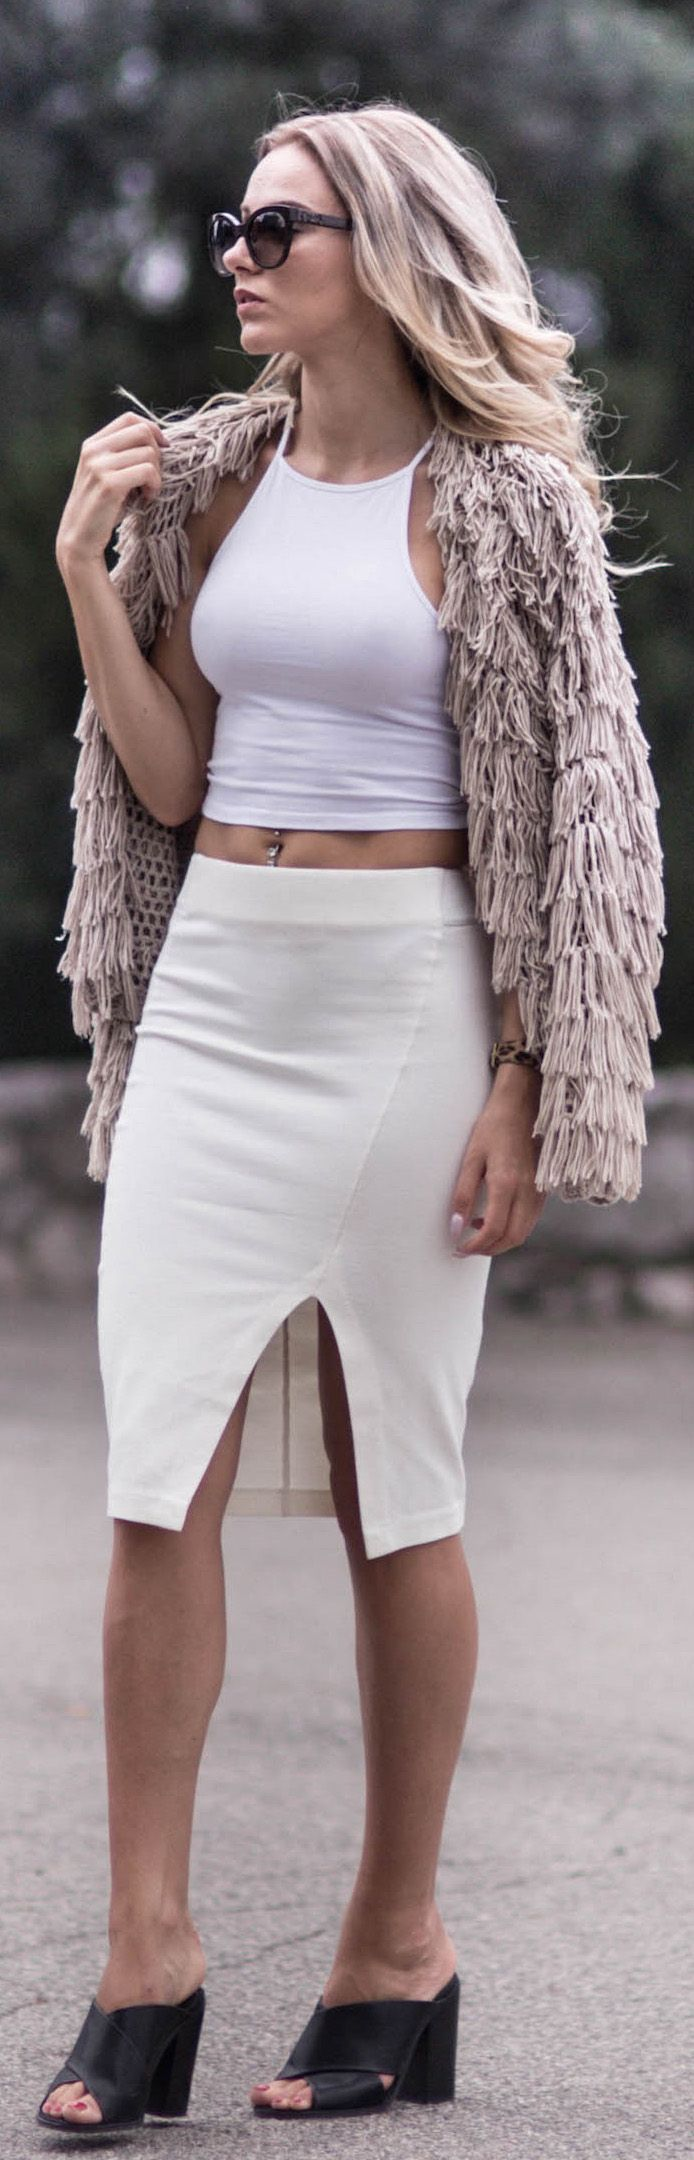 Via Just The Design: Sendi Skopljak is wearing a Lindex faux fur jacket, a NYL crop top and a creme body con skirt